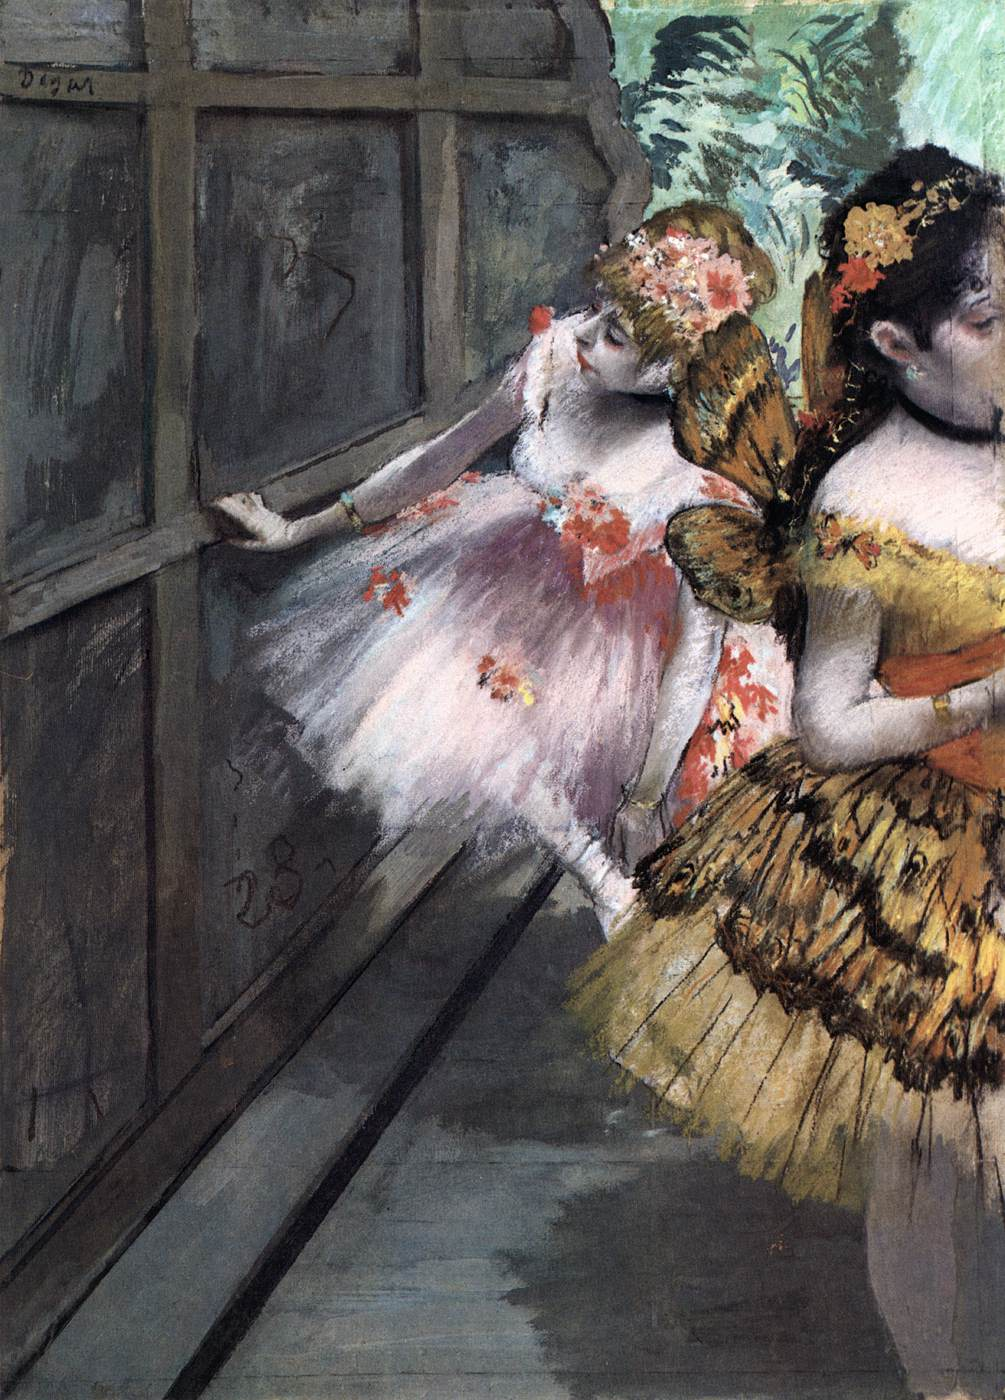 degas dancers essay Degas and the ballet: picturing movement – review royal academy, london laura cumming why, monsieur, do you always do ballet dancers degas flashed back.